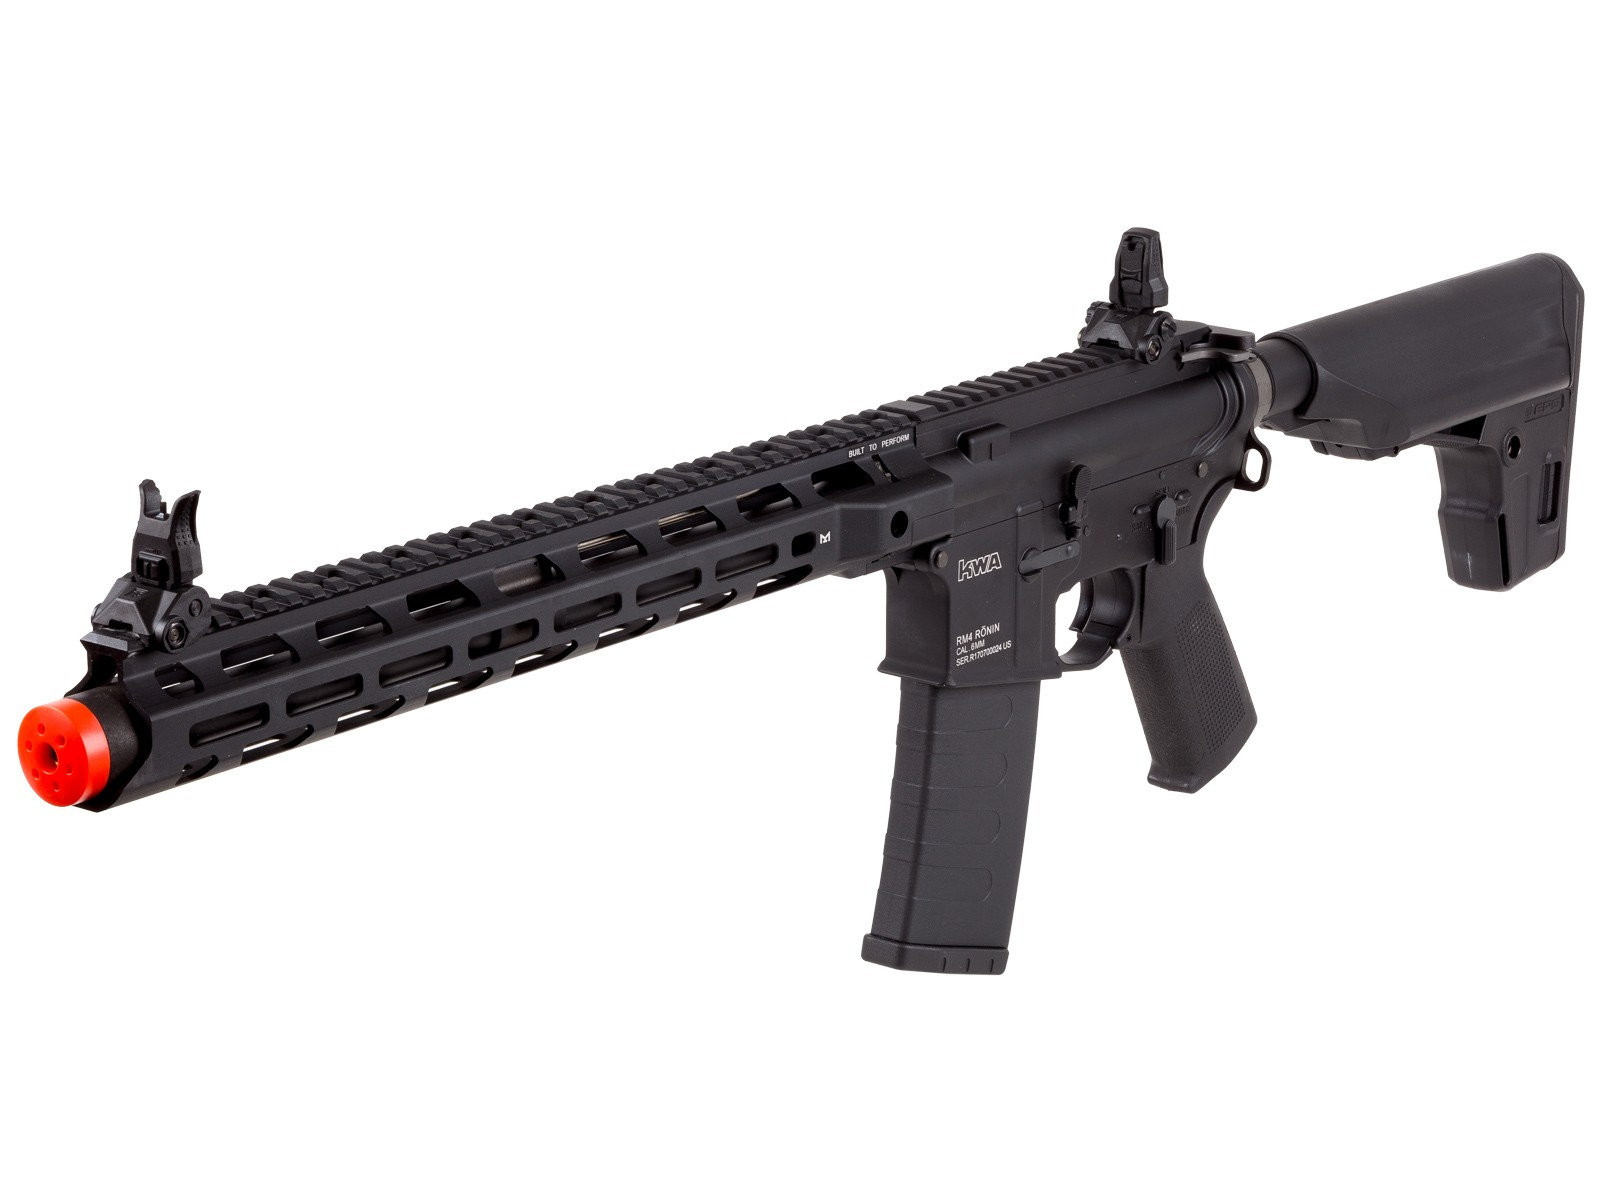 KWA_AEG3_RM4_Ronin_Recon_ML_Airsoft_Carbine_6mm